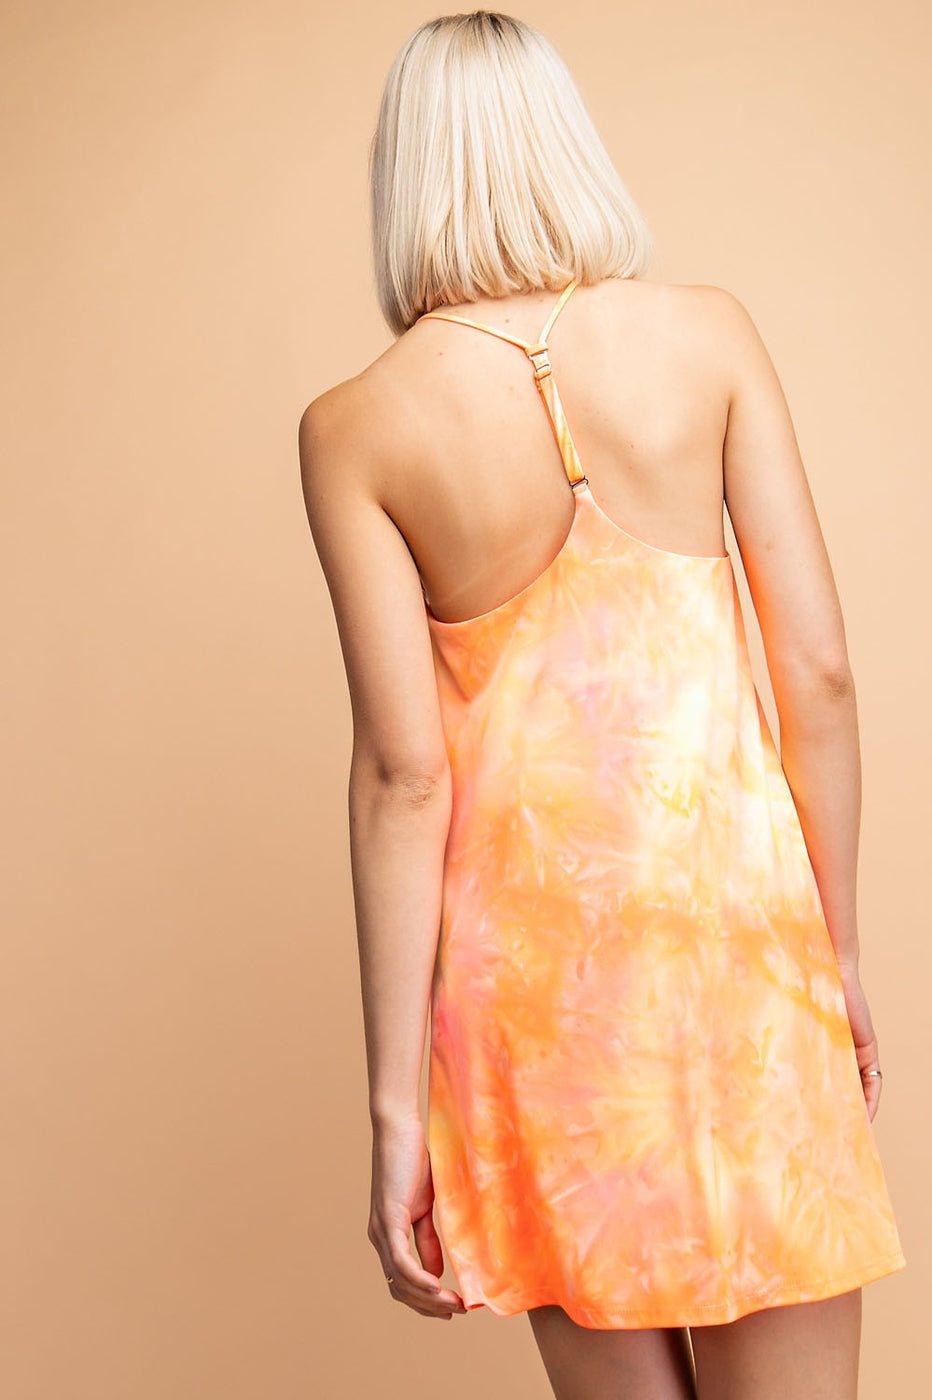 Neon Tie-Dye Single Strap Back Detail Mini Dress Siin Bees